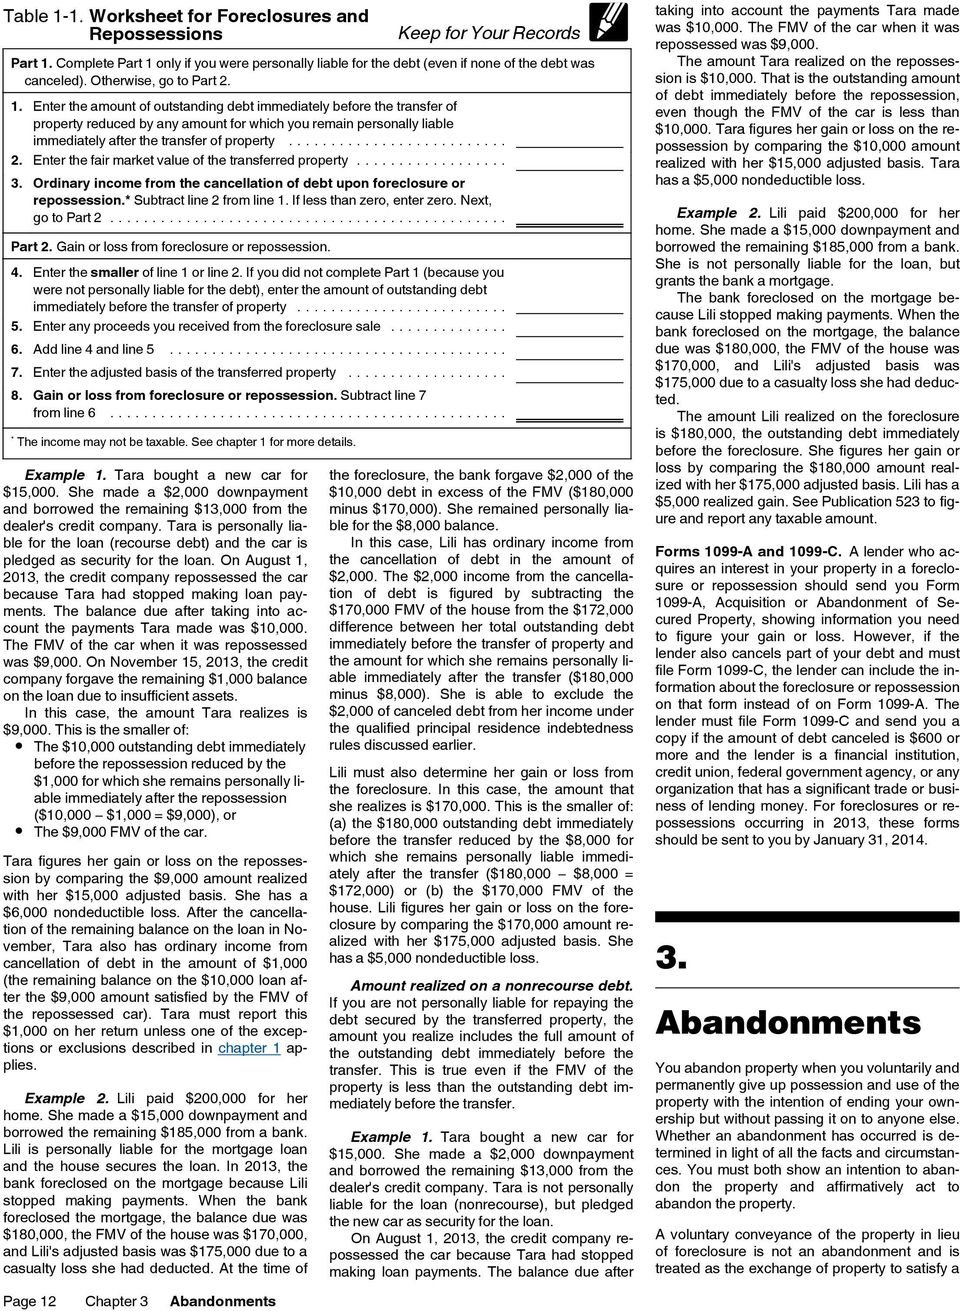 additionally Form 1099 A for Foreclosure and Its Effect on Your Ta together with  likewise Insolvency Worksheet   Oaklandeffect additionally The Ins And Outs Of The Foreclosure Process   FortuneBuilders besides Publication 4012  Rev  12 2018 furthermore How Short Sales and Foreclosures Affect Your Ta   TurboTax Tax in addition  in addition FORECLOSURE   MORTE DEBT FORGIVENESS WHAT ARE THEY  WHY ARE WE further Foreclosure Repossession Quitclaim Short Sale 1099 C 1099 A likewise SHORT SALE GAIN ESTIMATOR furthermore FORECLOSURE   MORTE DEBT FORGIVENESS WHAT ARE THEY  WHY ARE WE in addition 5 10 4 Actions Prior to Sale   Internal Revenue Service together with  in addition  further Foreclosure Repossession Quitclaim Short Sale 1099 C 1099 A. on worksheet for foreclosures and repossessions